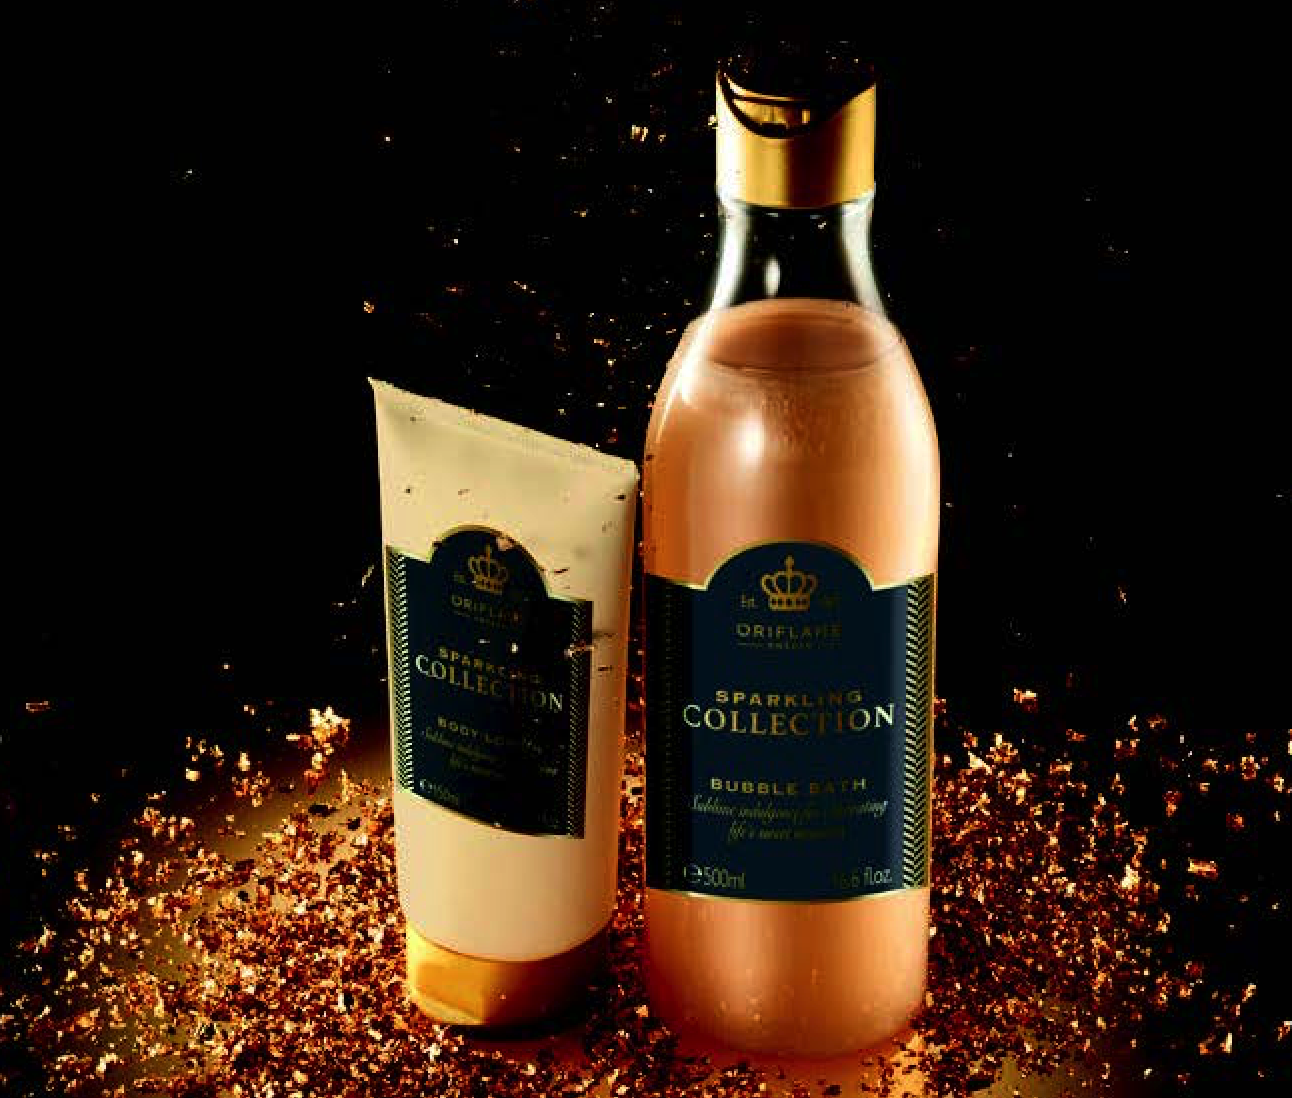 SPARKLING COLLECTION: BODY LOTION AND BATH FOAM